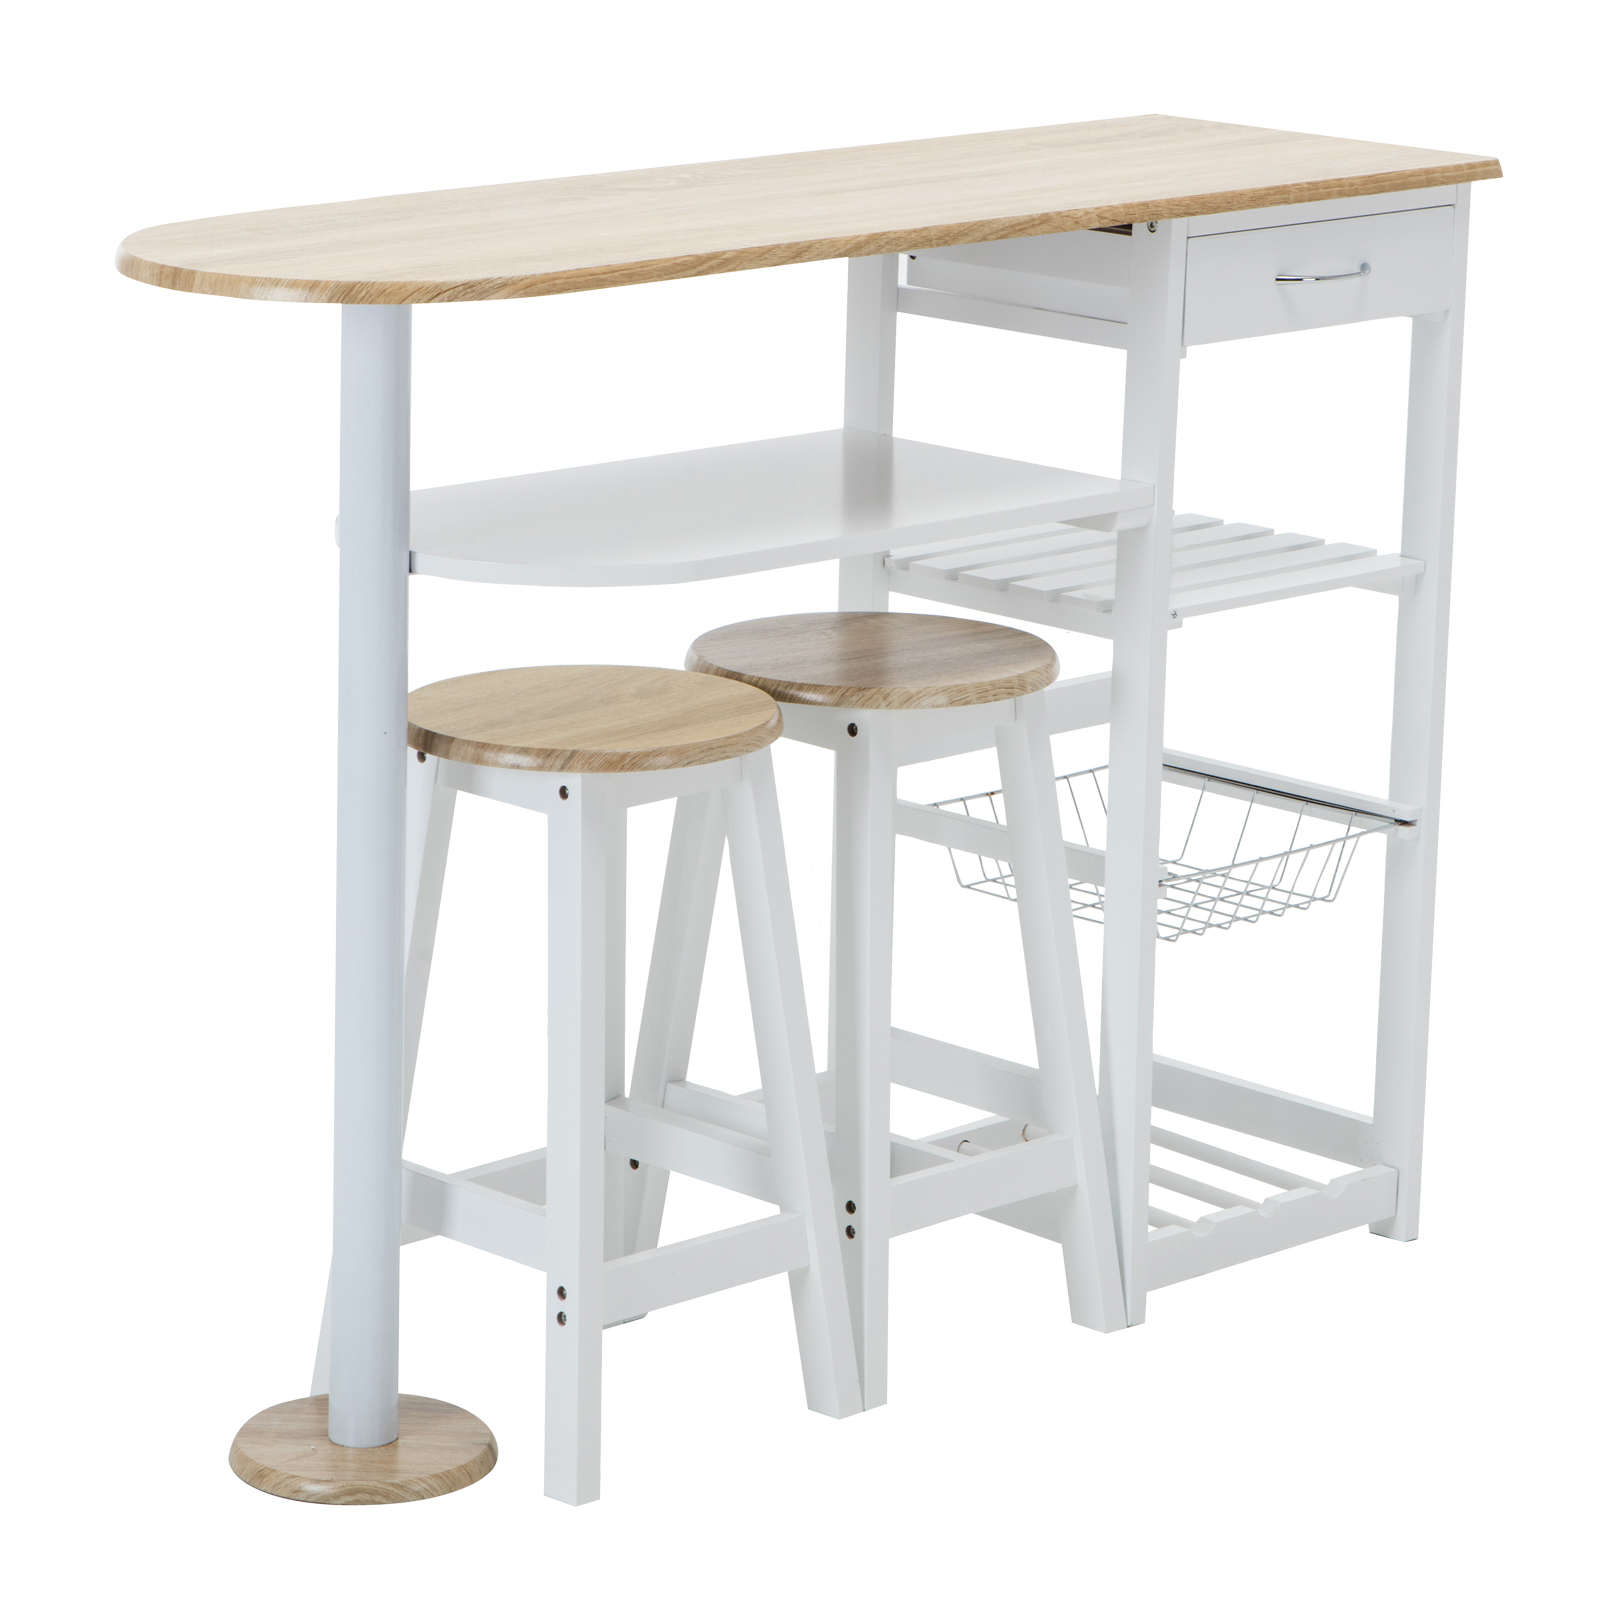 Oak White Kitchen Island Cart Trolley Dining Table Storage 2 Bar Stools Drawer Ebay